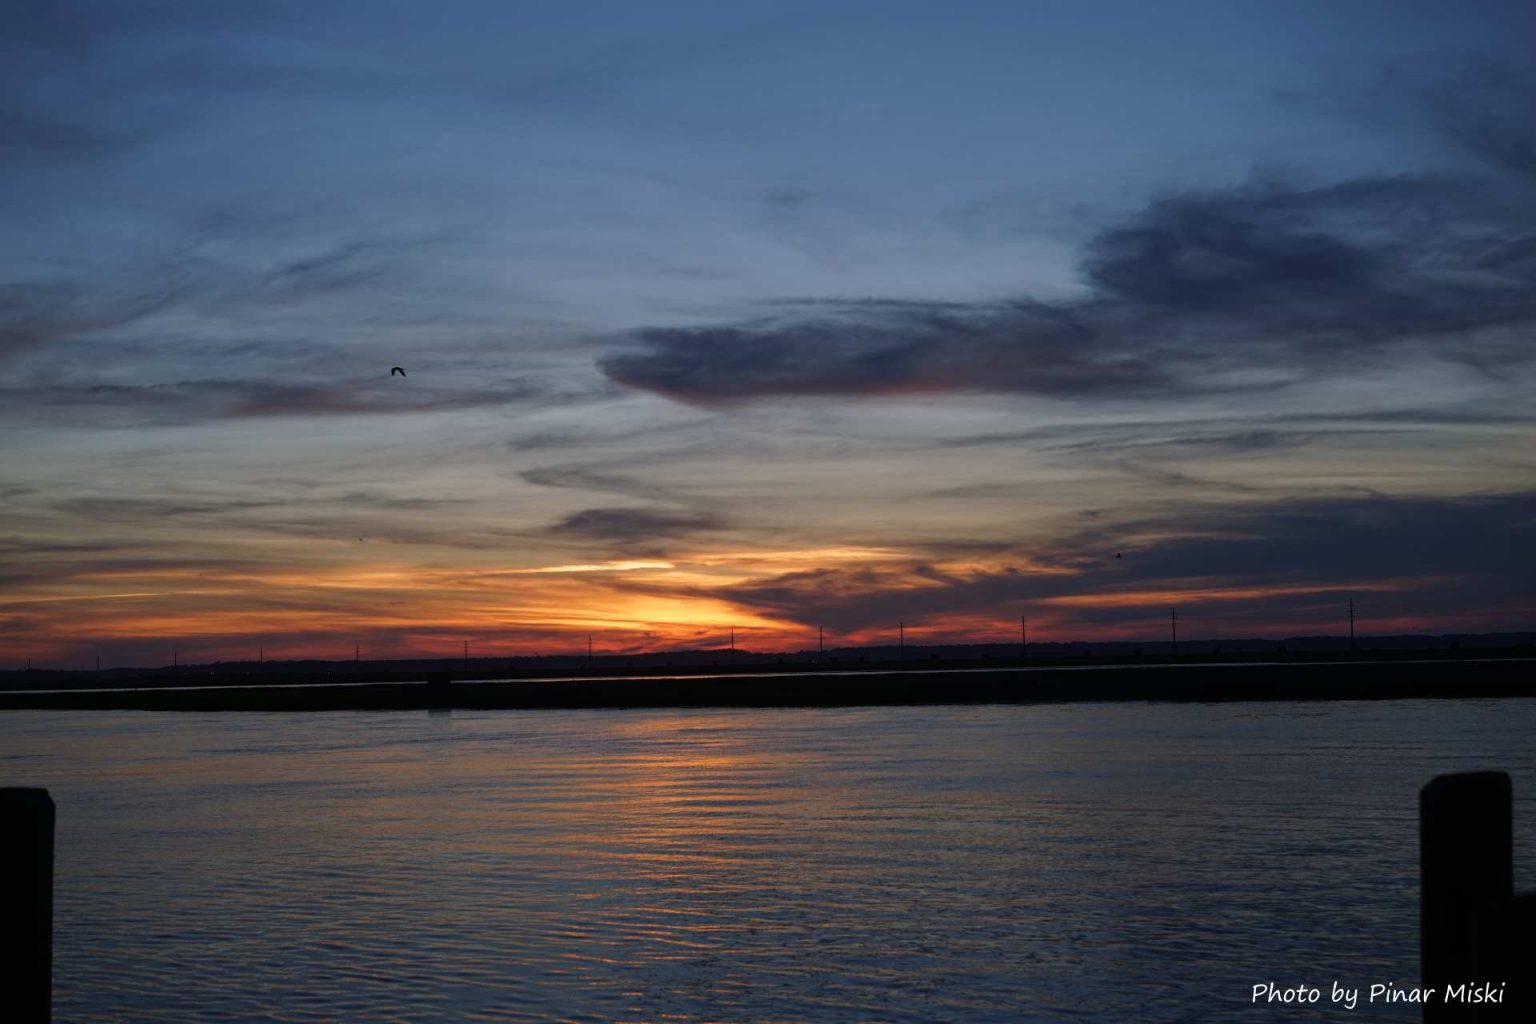 End your day on Chincoteague Island walking down main street and enjoying a unique sunset